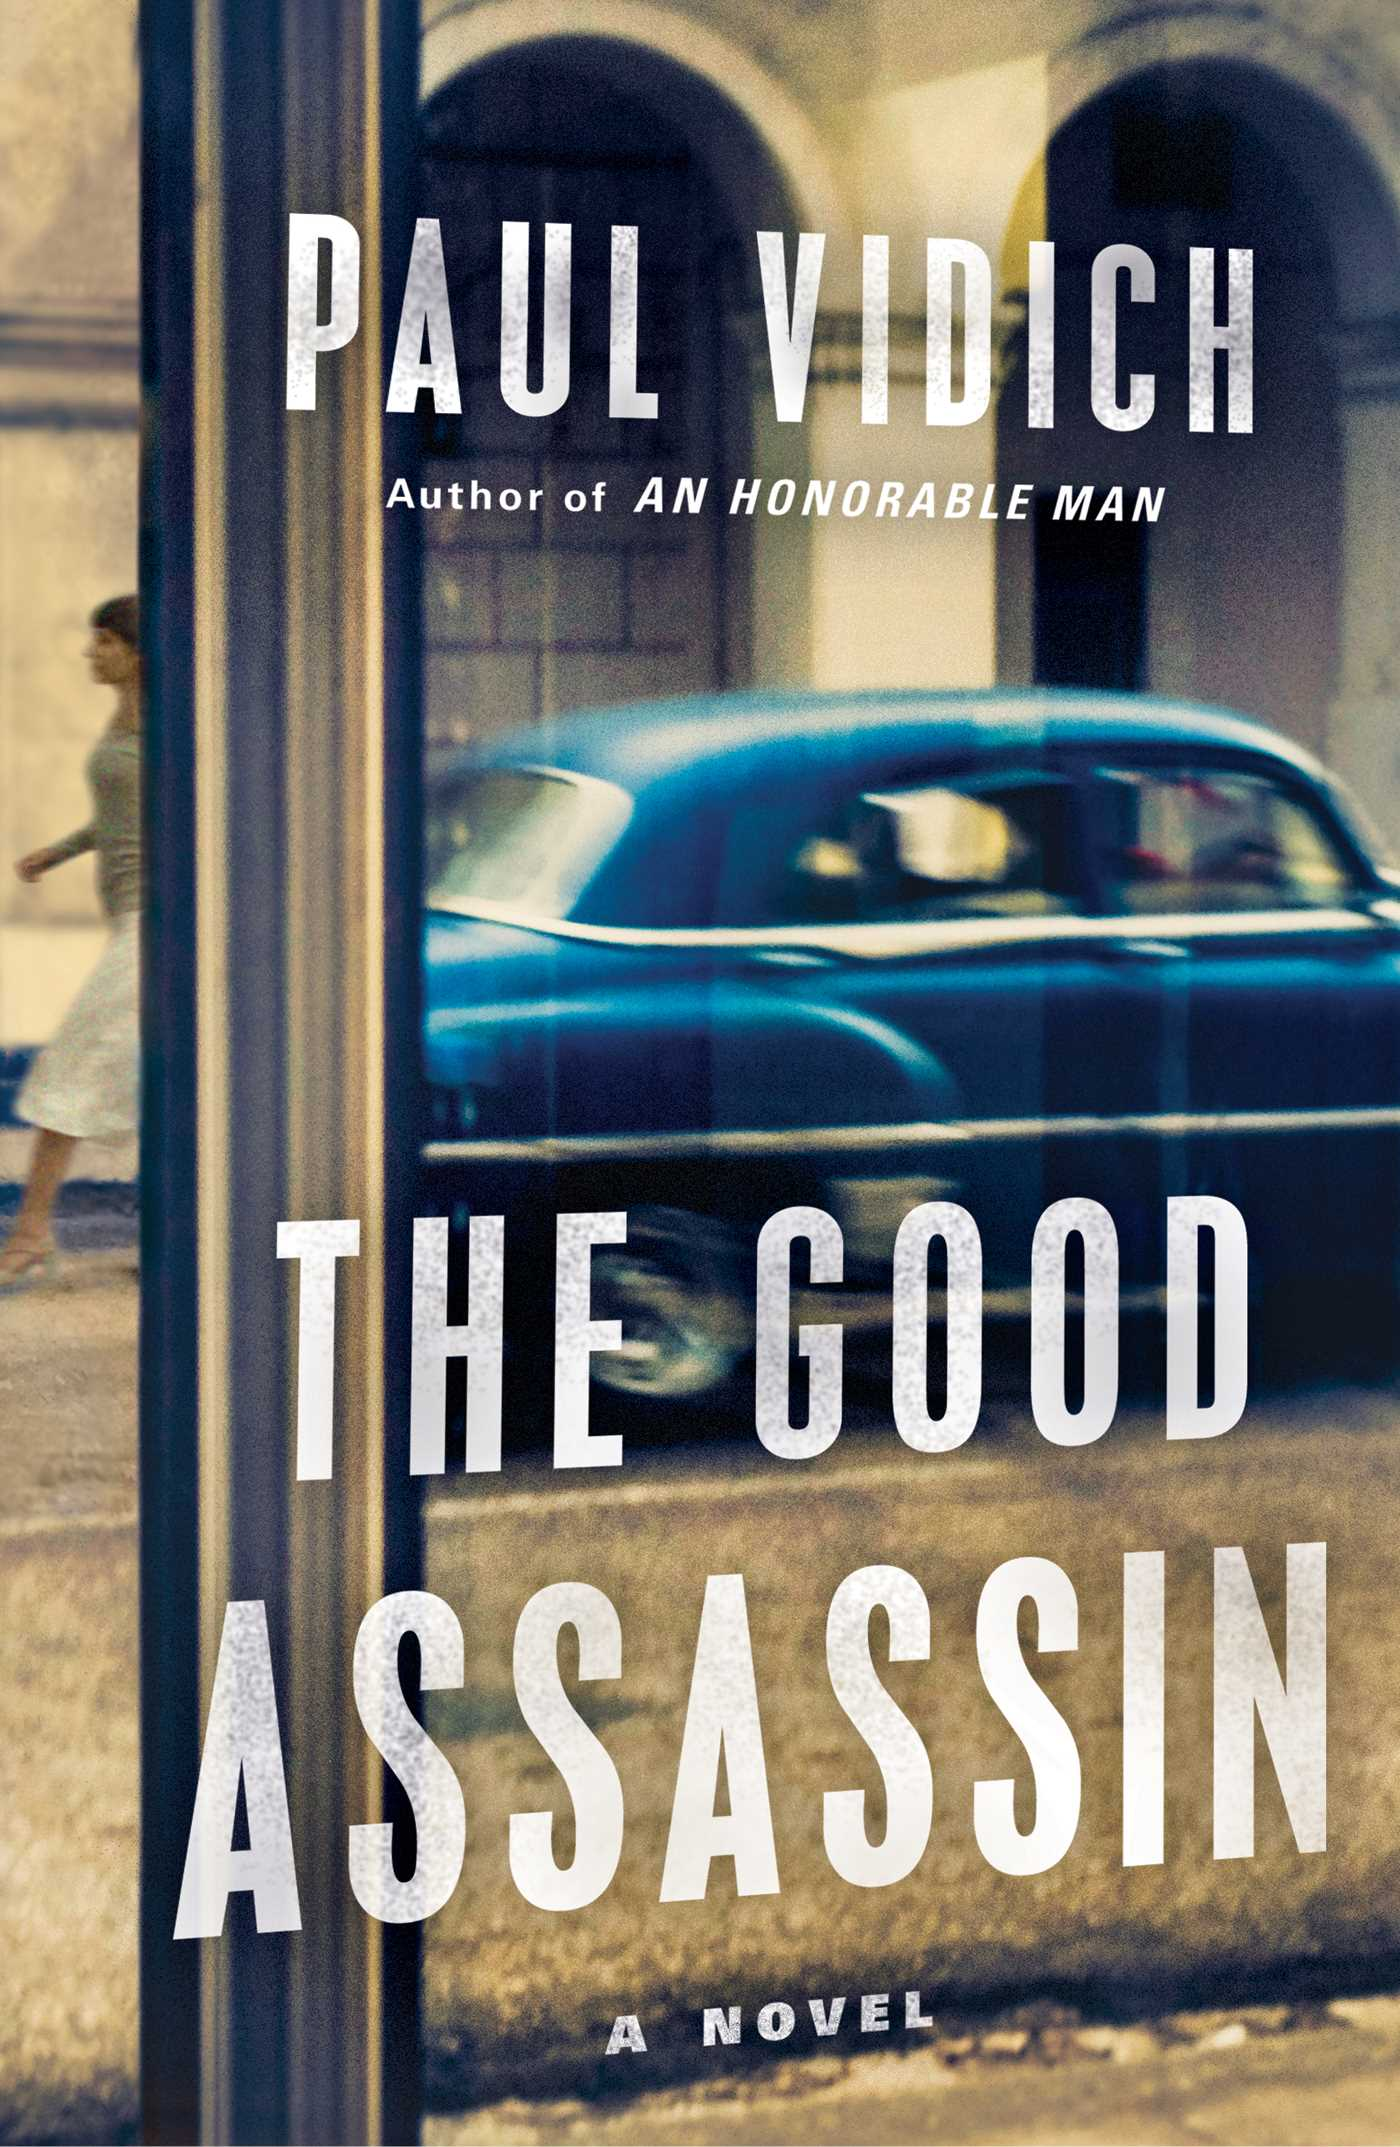 The good assassin 9781501110429 hr